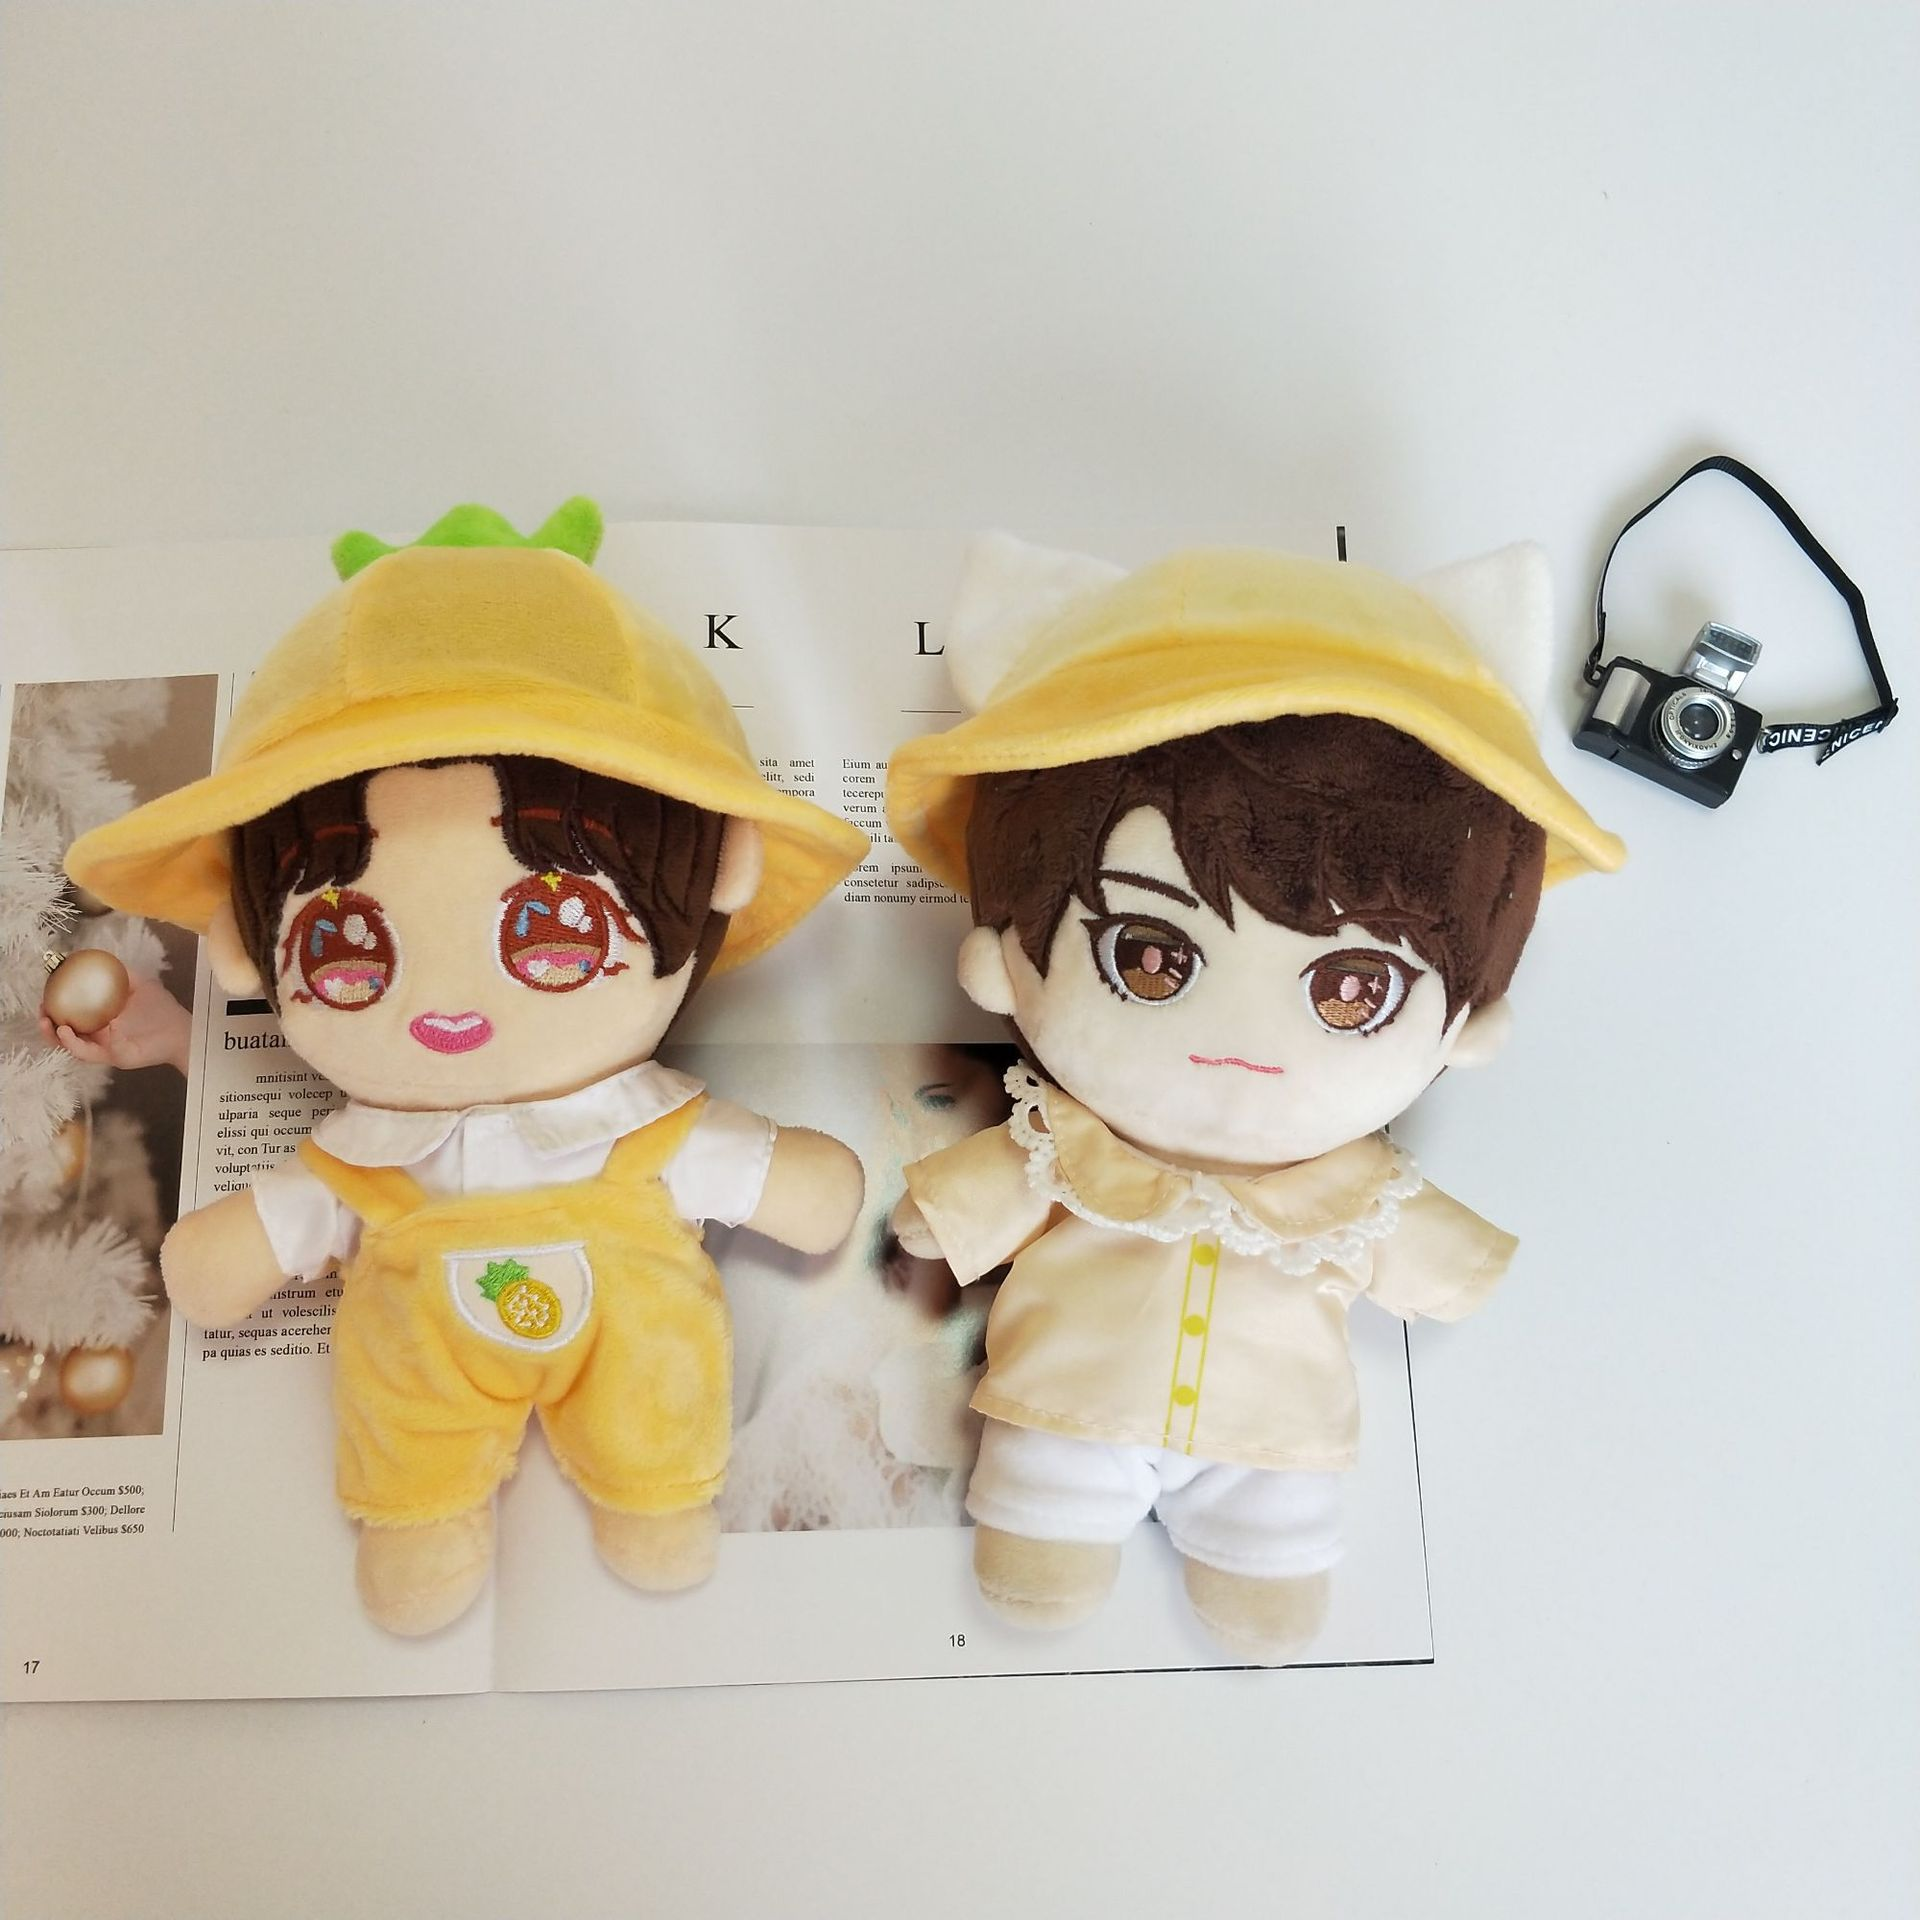 [MYKPOP]KPOP Clothes: Lovely Pineapple Hat and Overallst for 20cm Dolls (without Doll) KPOP Fans Collection SA20062208(China)